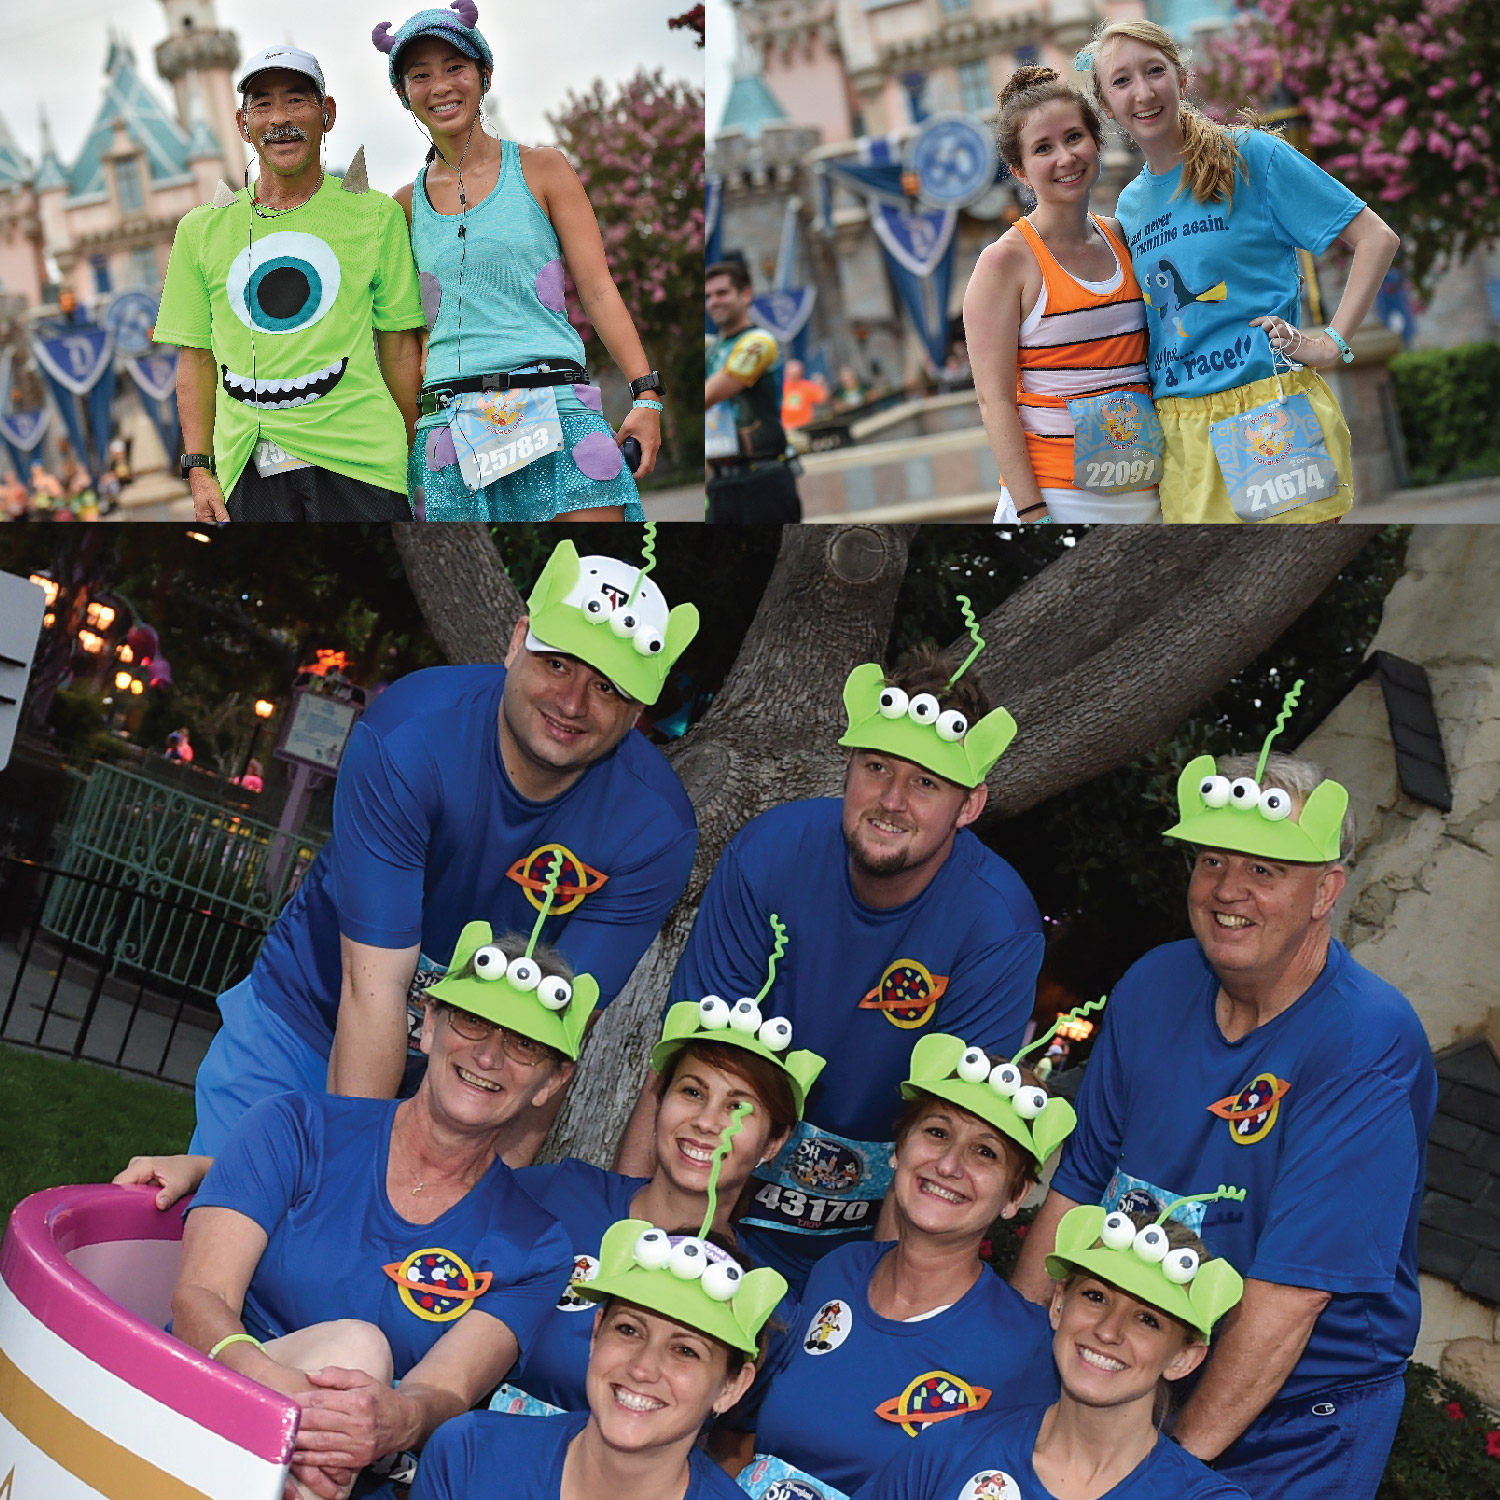 runDisney Half Marathon weekend Pixar themed. Monsters University Costumes, Up! Costumes.